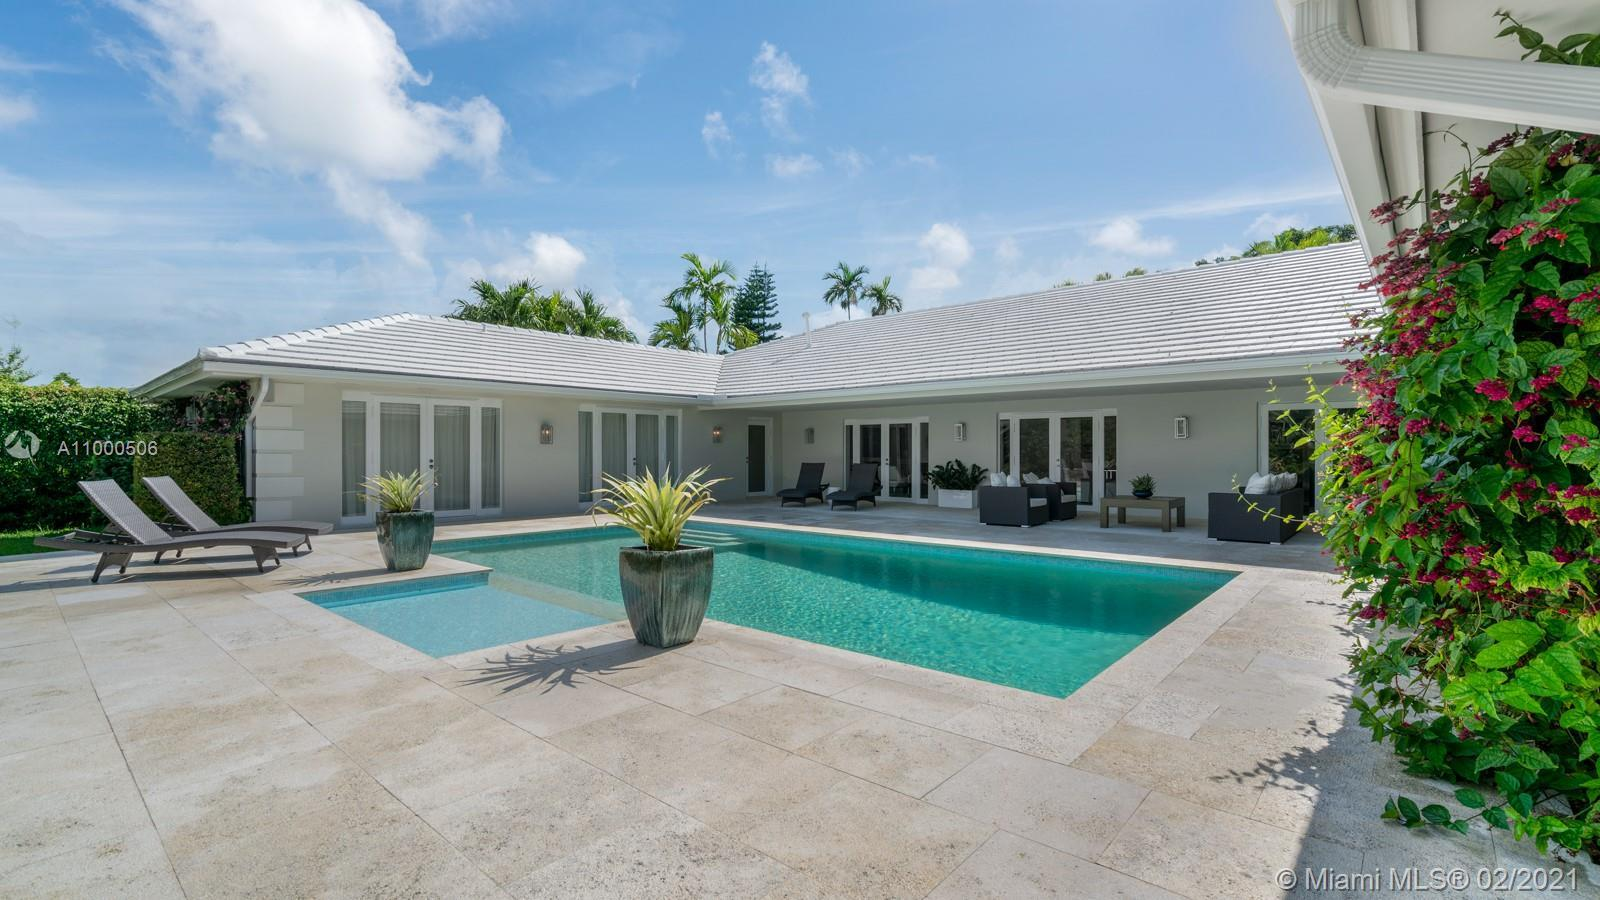 This is no Spec home! Stunning, Customized 4-bedroom 3-1/2 bath- 2 car garage turn-key home on Coral